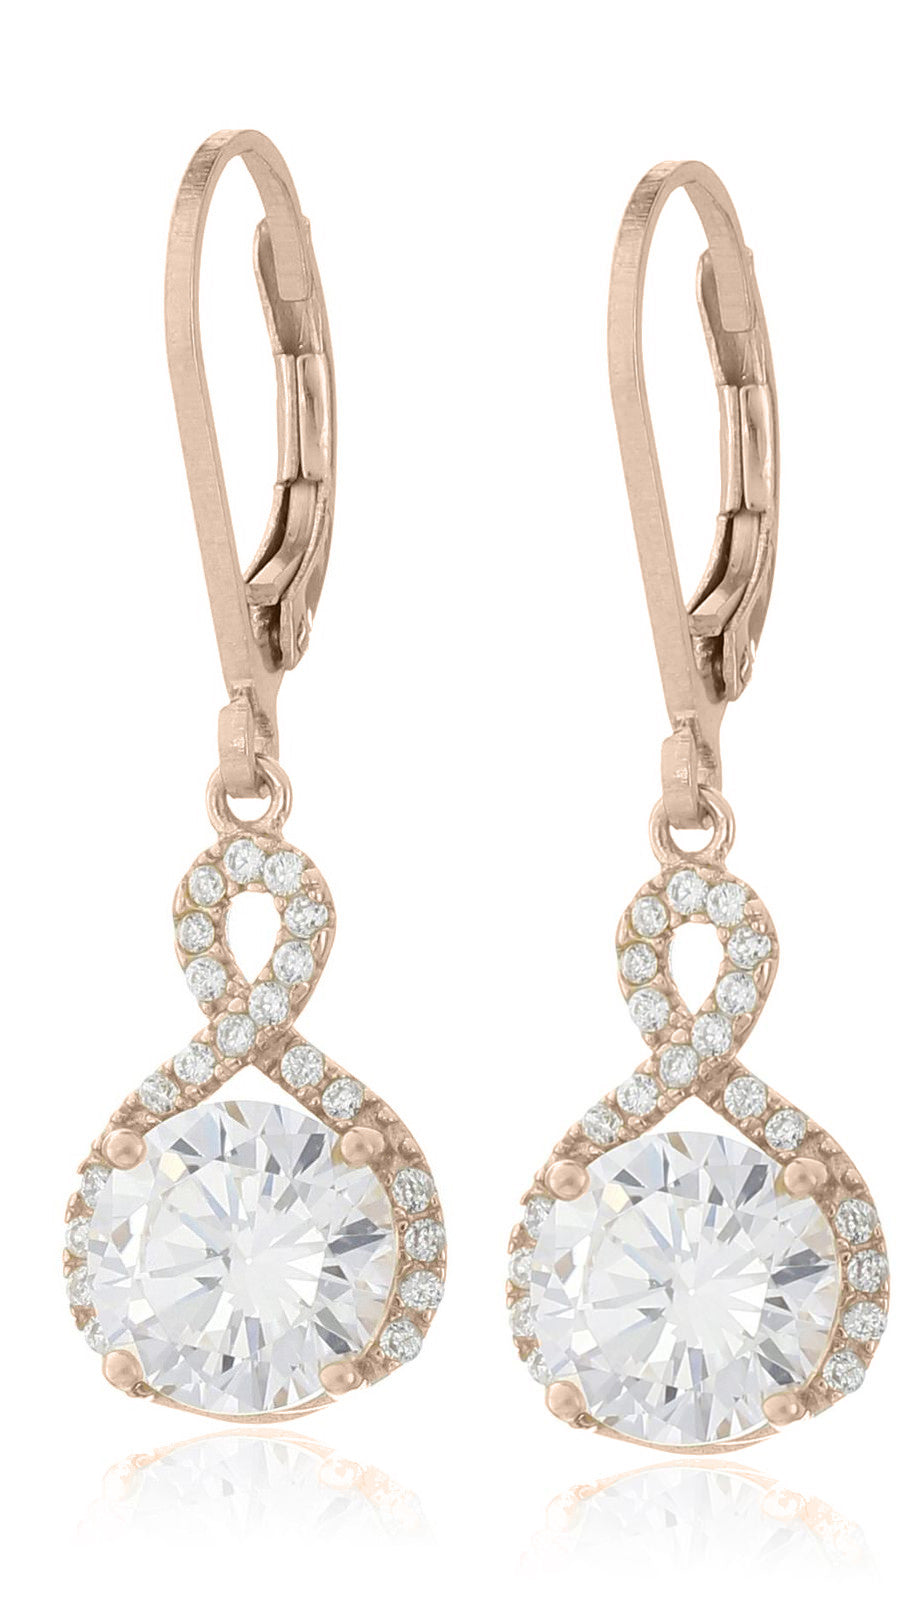 Swarovski Infinity Crystal Drop Earrings - Rose Gold